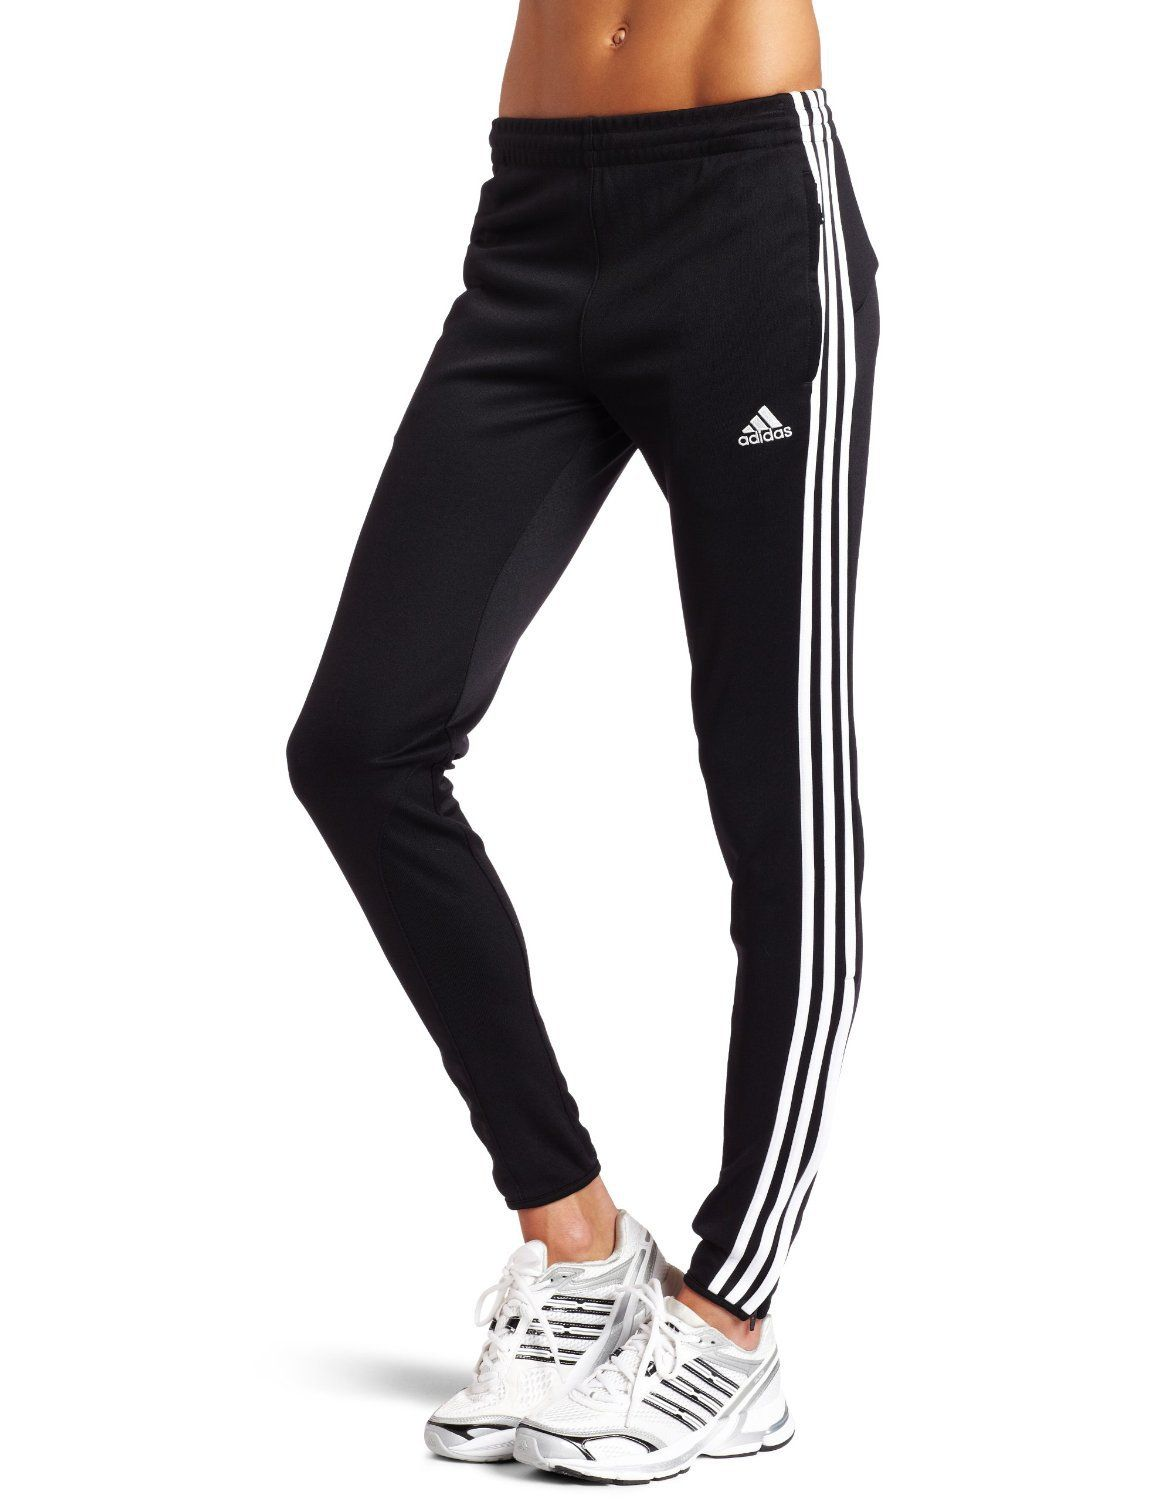 I want these Adidas training pants regardless whether I play soccer or not.   ) 40e29685a60